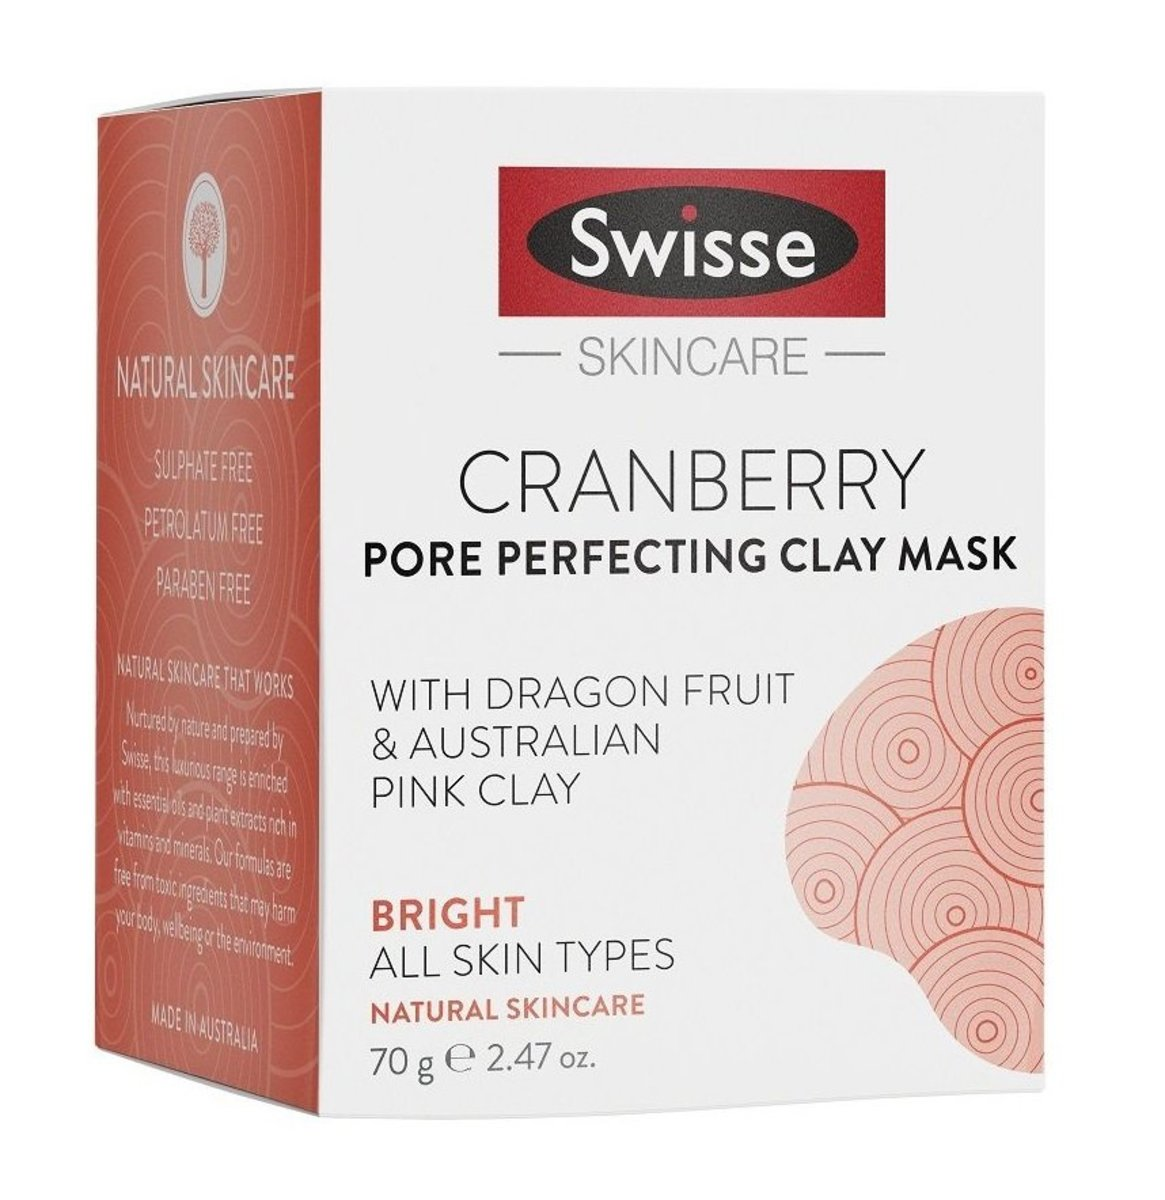 Cranberry Pore Perfecting Clay Mask 70g